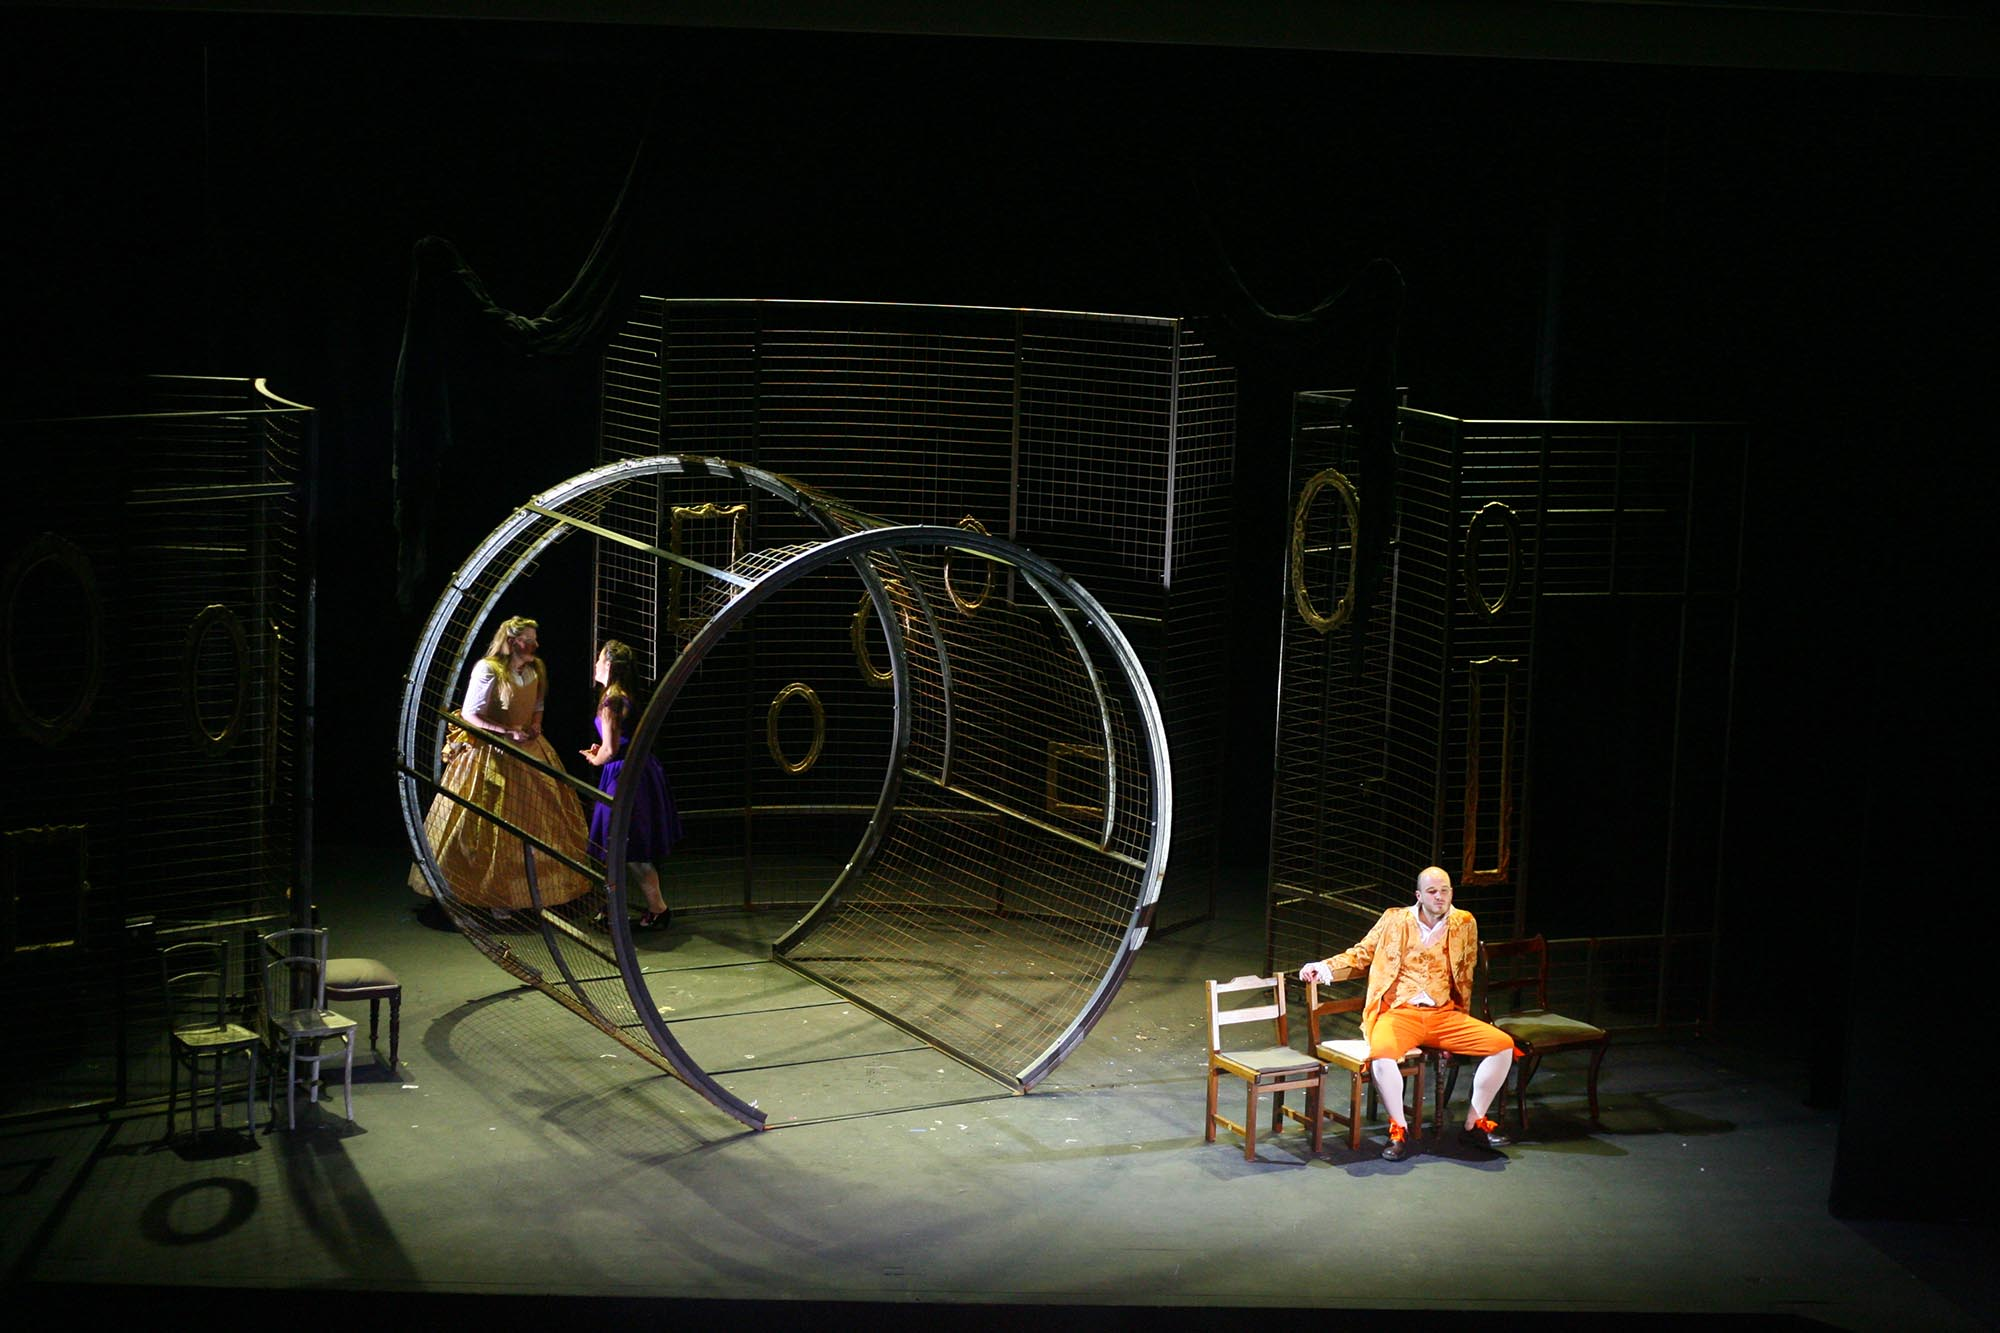 Le-nozze-di-Figaro-opera-directed-by-Jacopo-Spirei--in-London-5